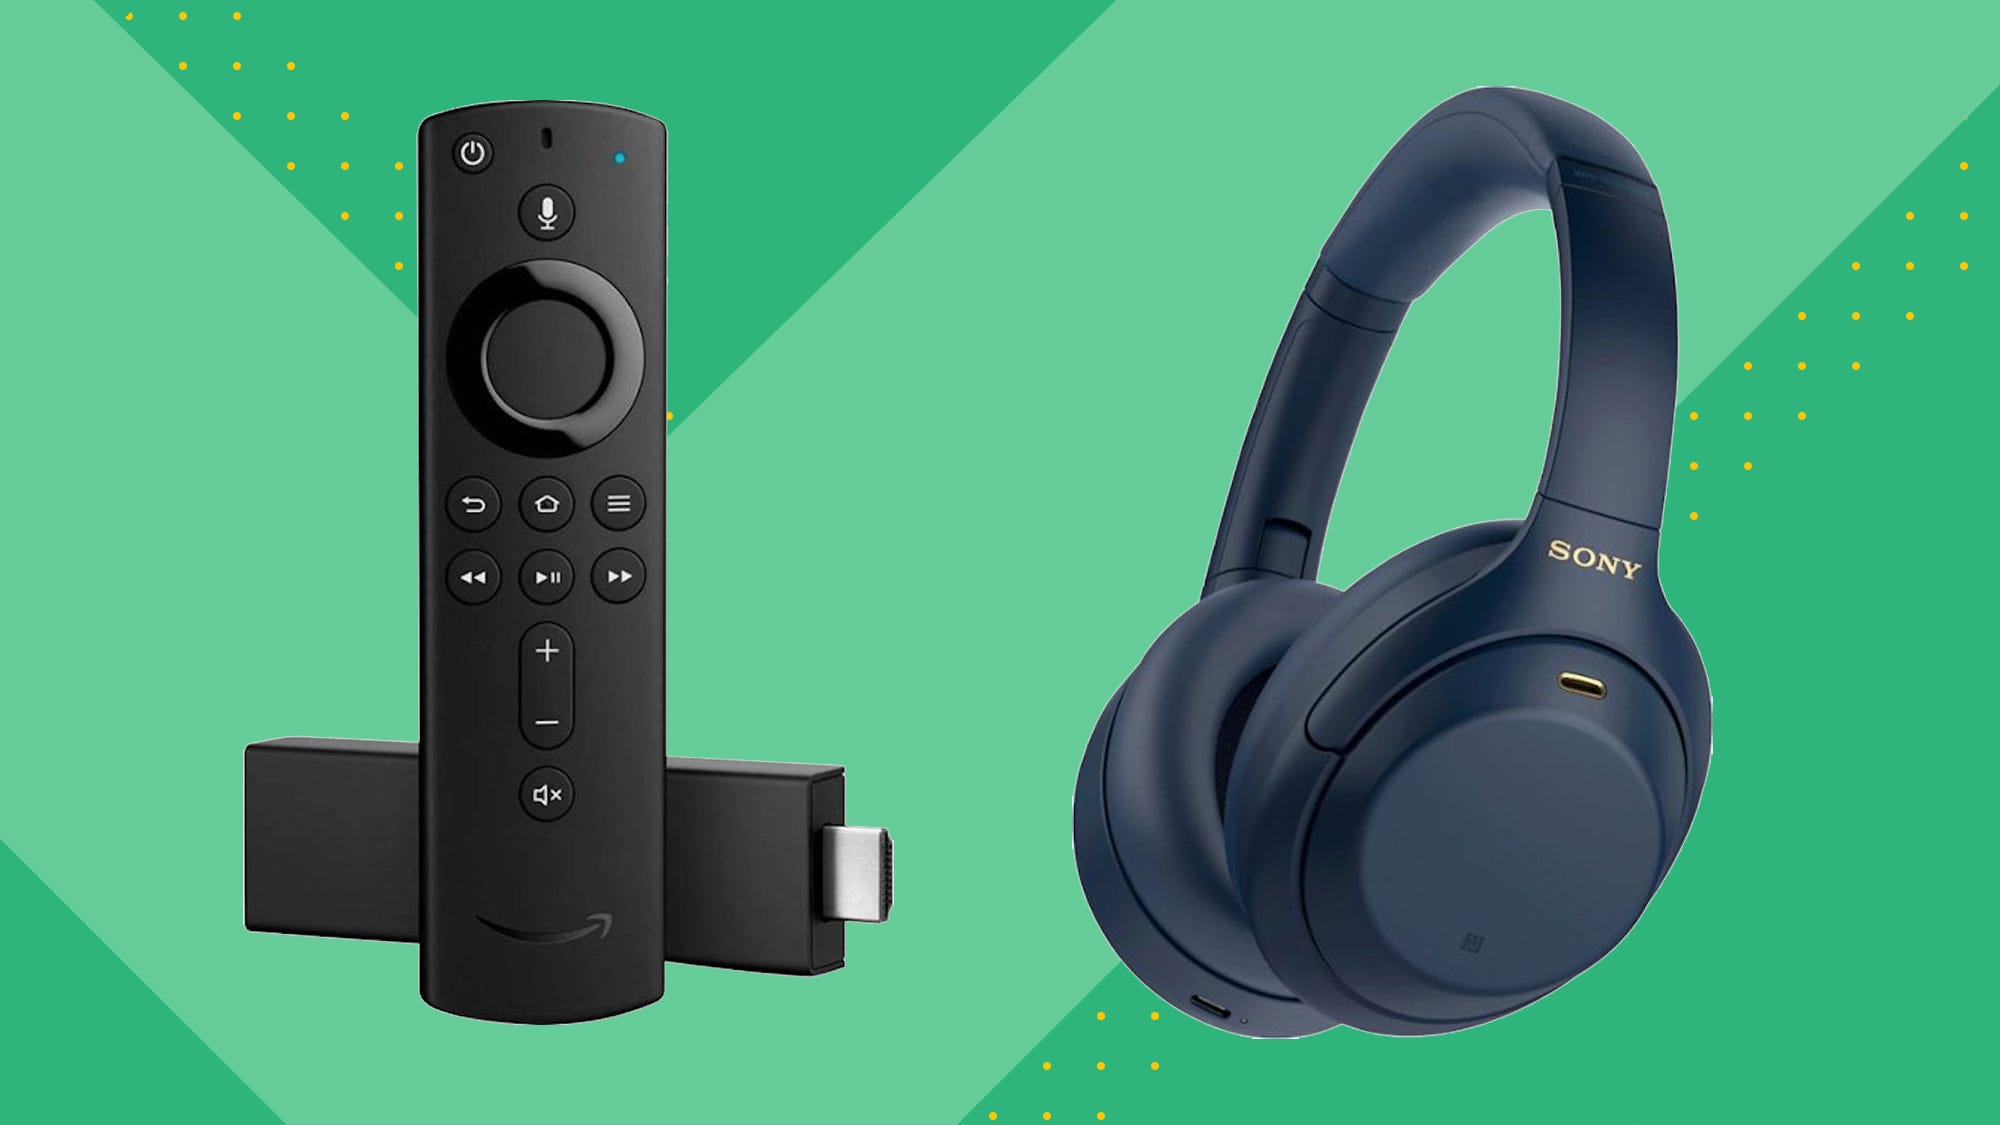 Best Buy just dropped a surprise Black Friday 2020 Sale and these are the best deals